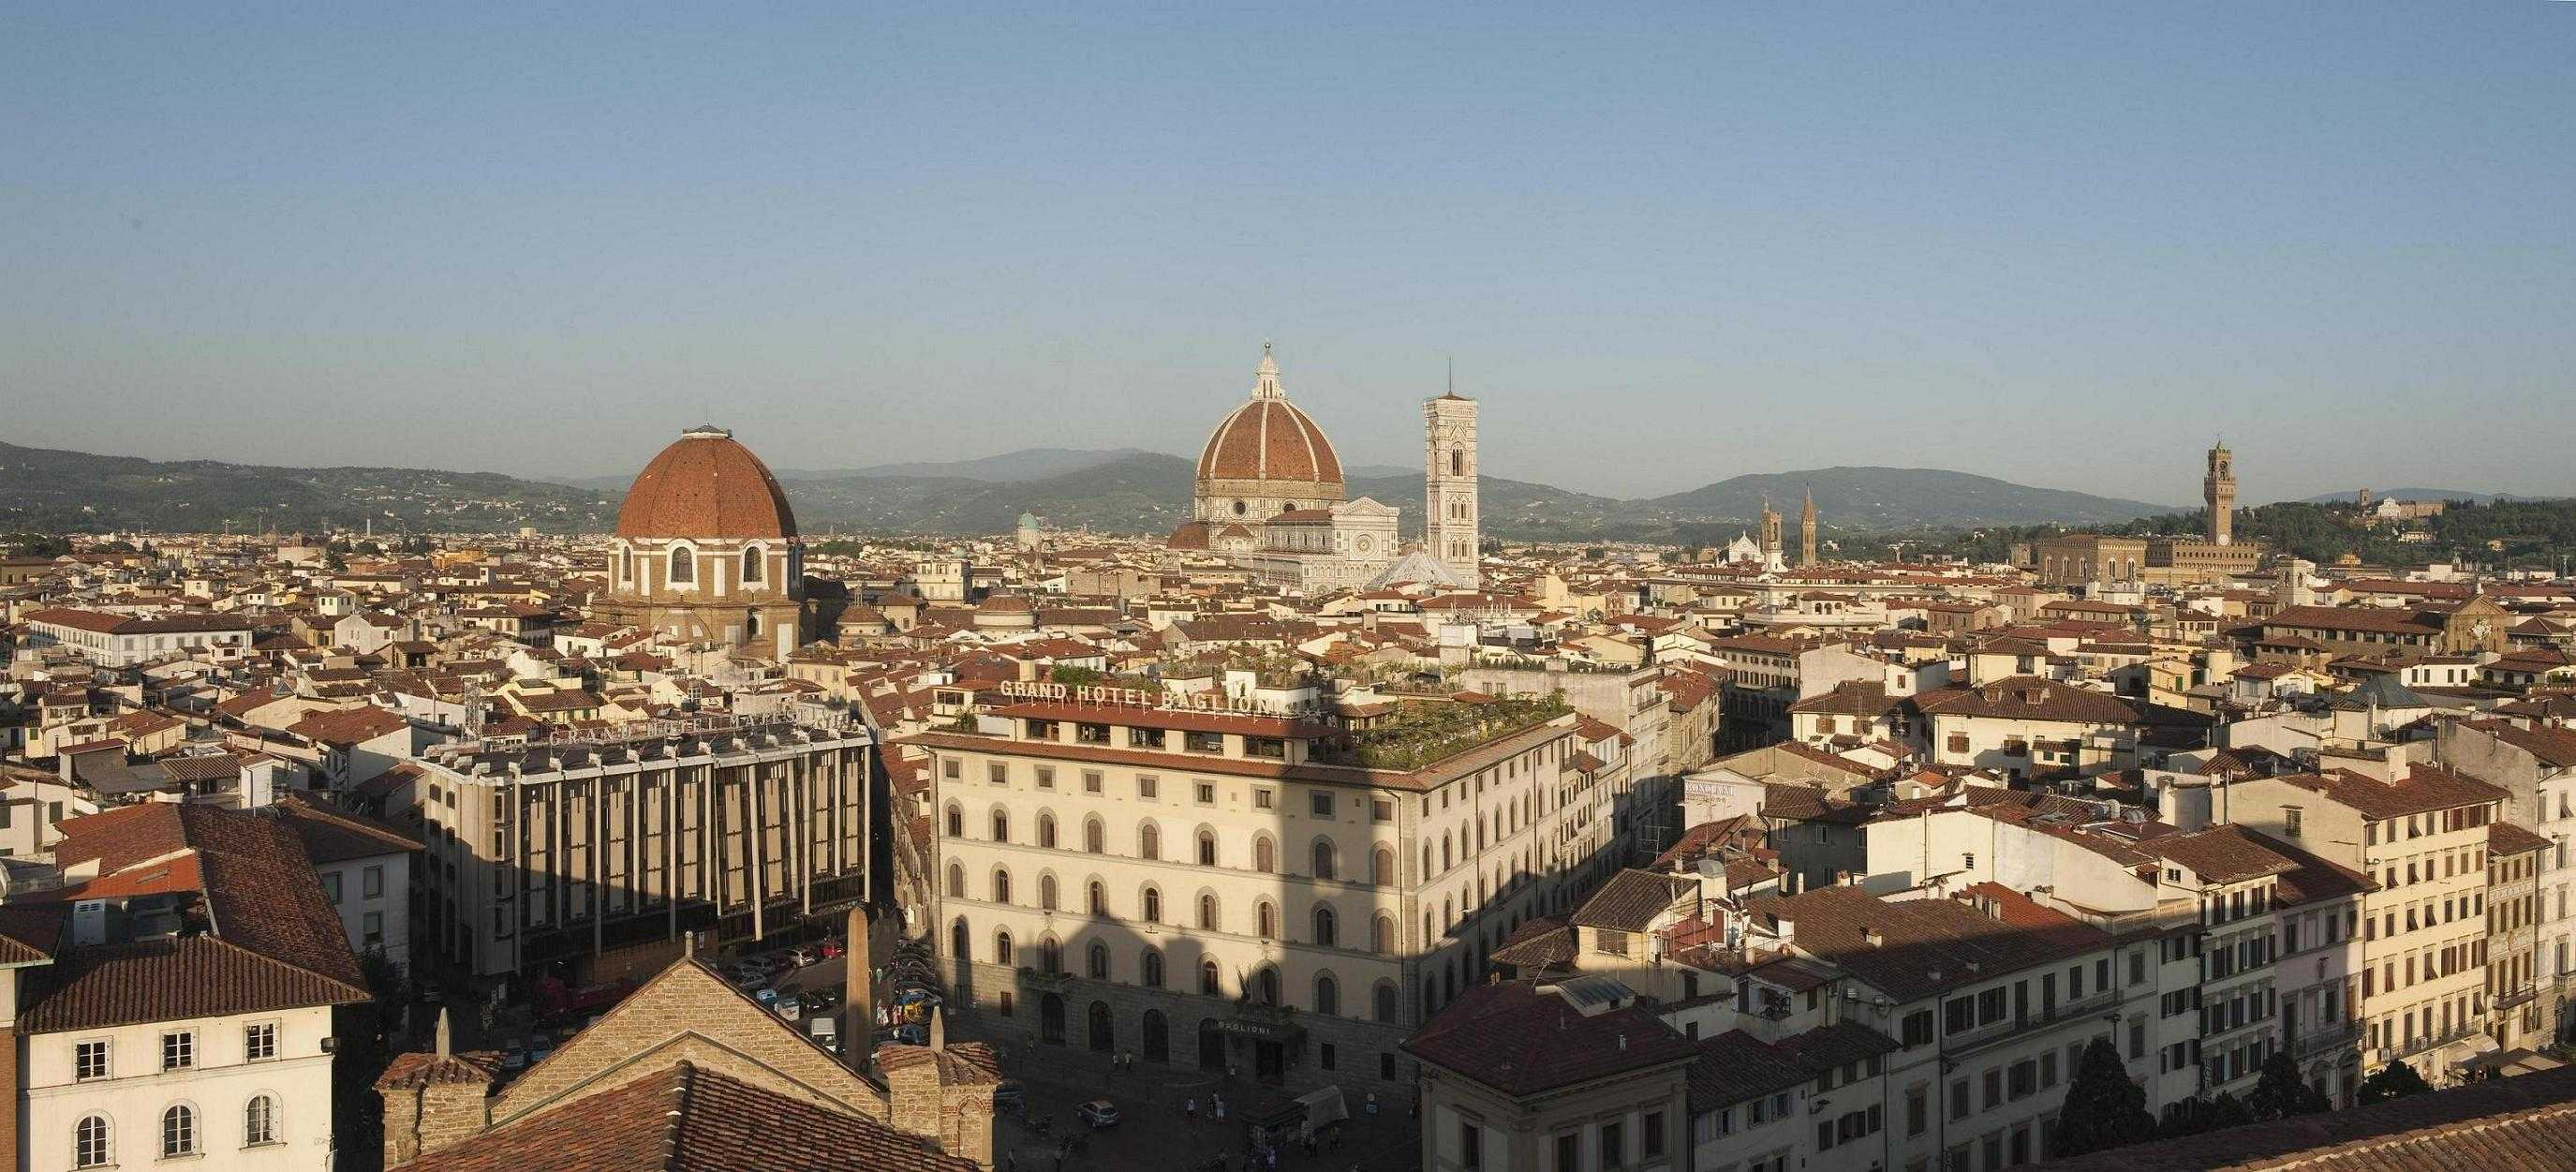 Terrazza Brunelleschi Panoramic Restaurant & Roof Garden - Firenze ...